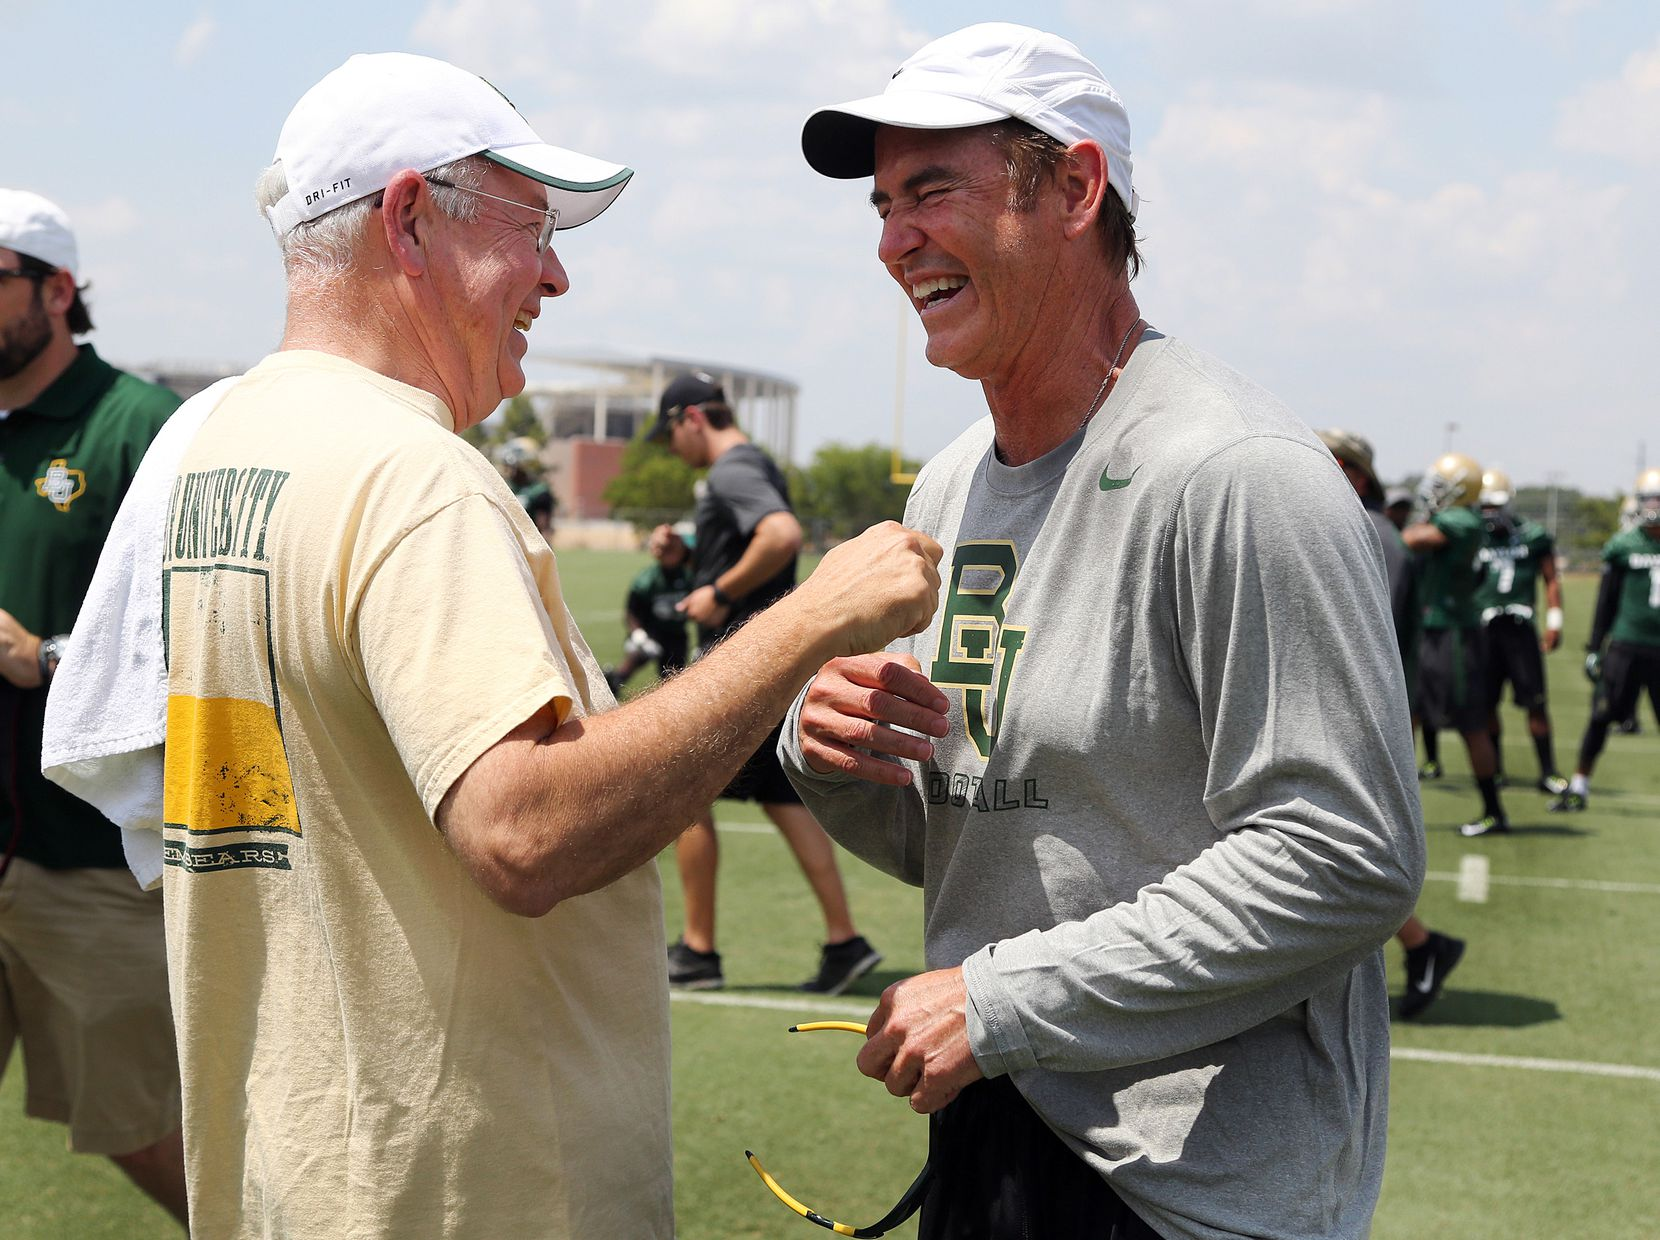 Baylor University President Ken Starr (left) joked with head football coach Art Briles on the first day of NCAA college football practice in 2014. Two years later, both of them were gone amid a sexual-violence scandal involving their football players.